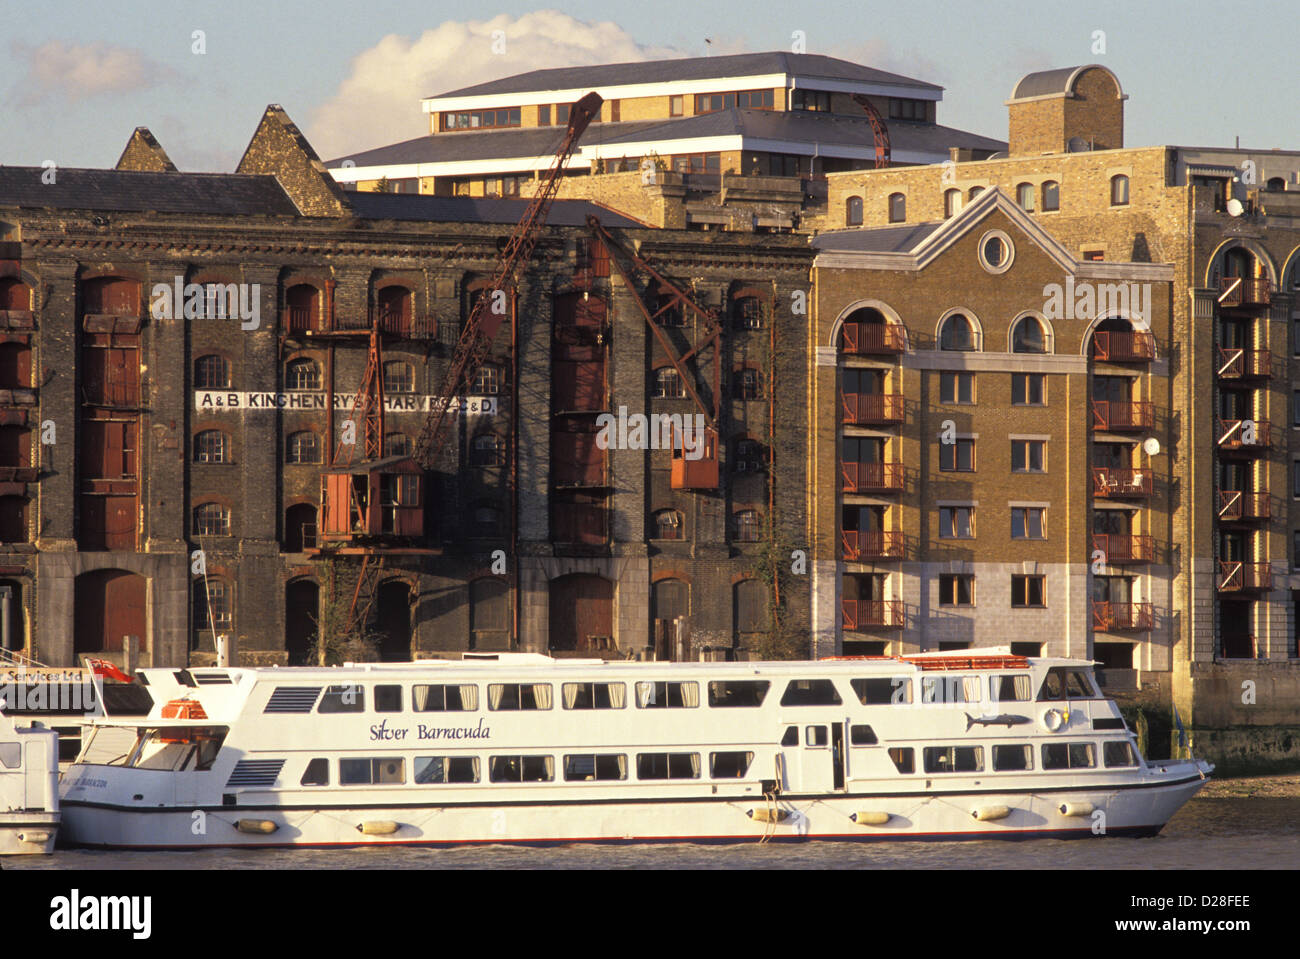 London: a river cruiser moored by warehouses and new-build flats at Wapping in the 1980s. 1989. - Stock Image